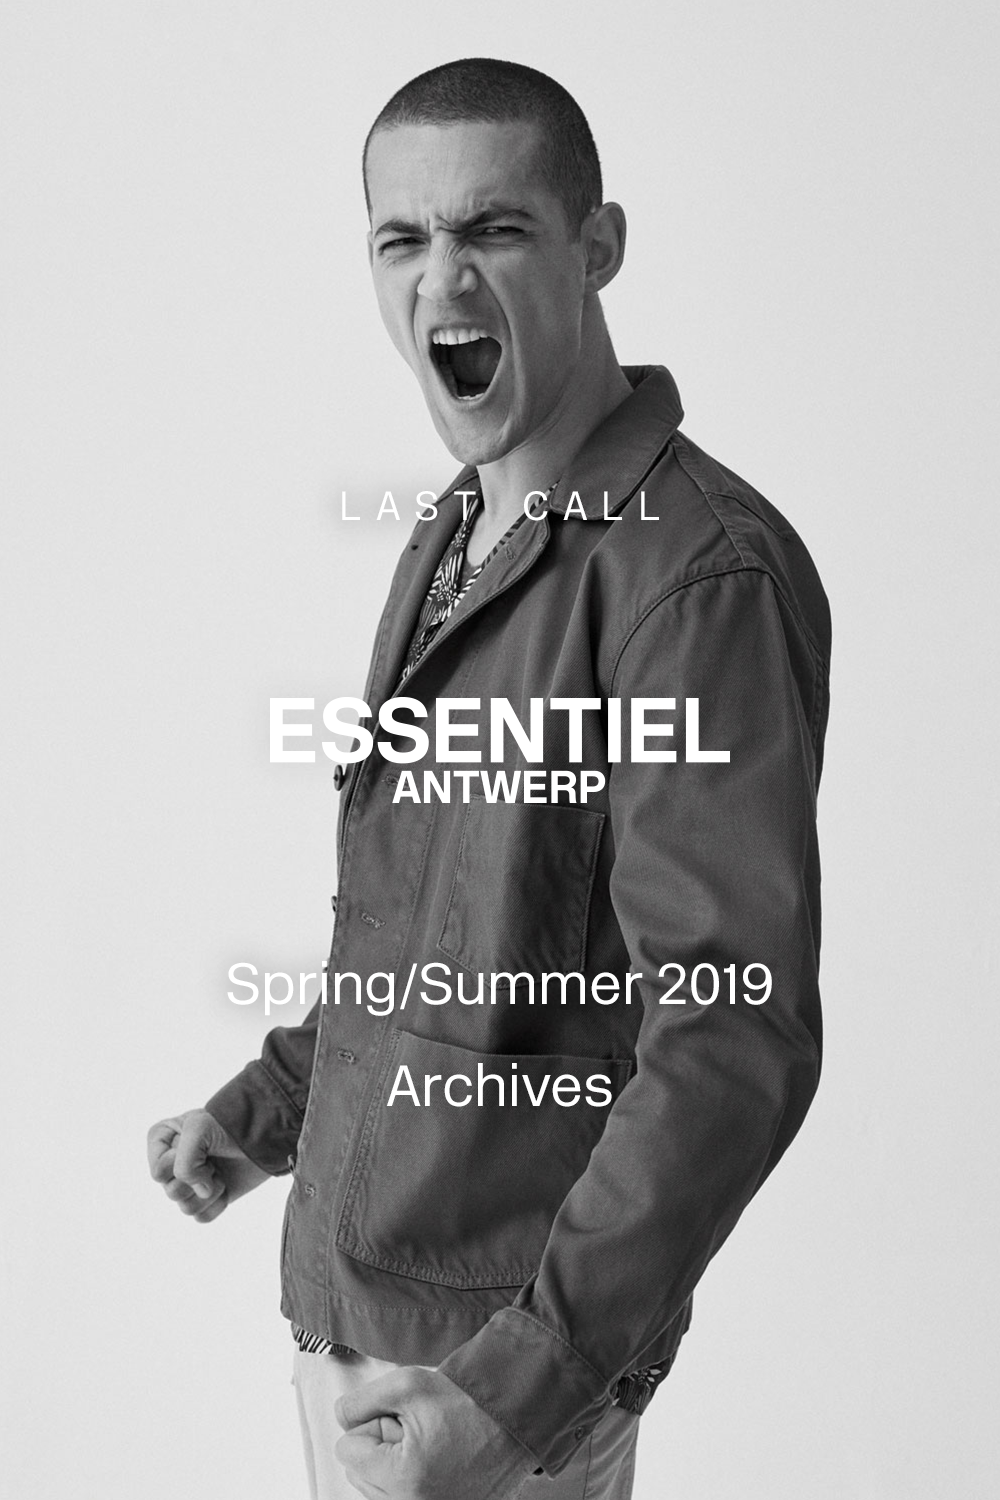 Hurry! This is your last chance to enjoy our SS19 archives at 60% off. Make this moment count and choose last season's treasures quickly before they're gone forever.